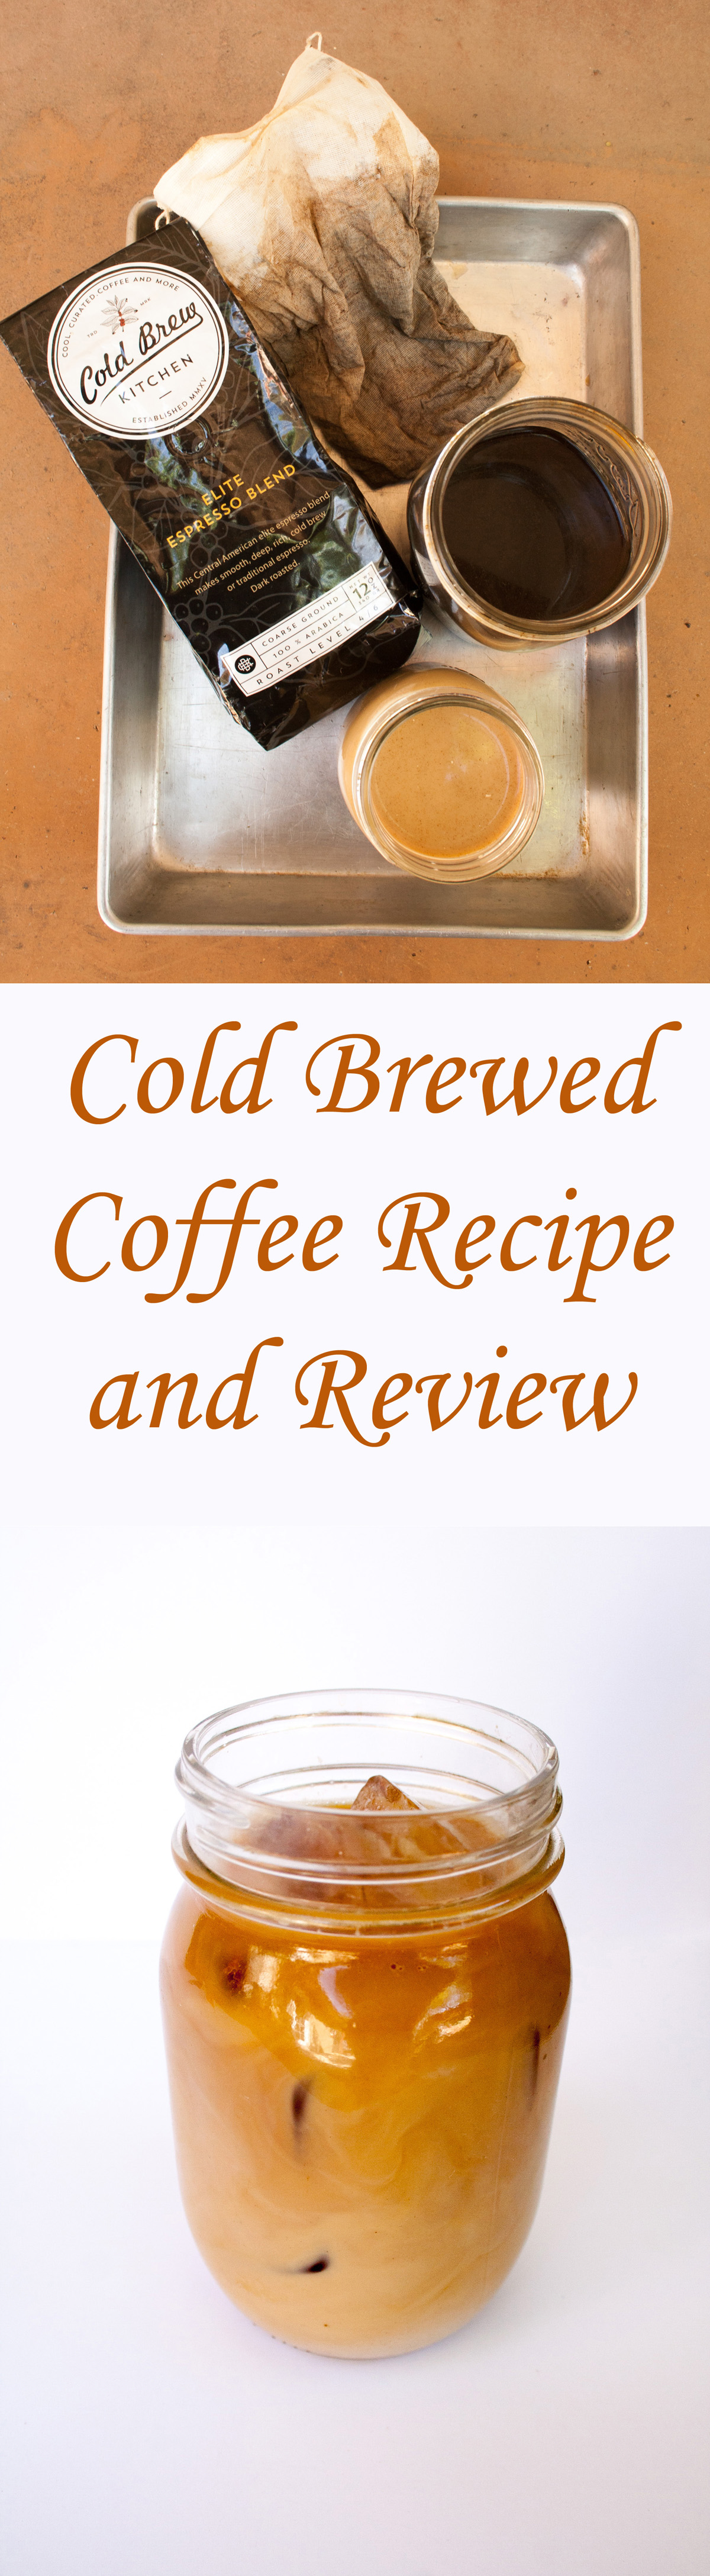 Cold Brewed Coffee Recipe and Review collage photo with text.